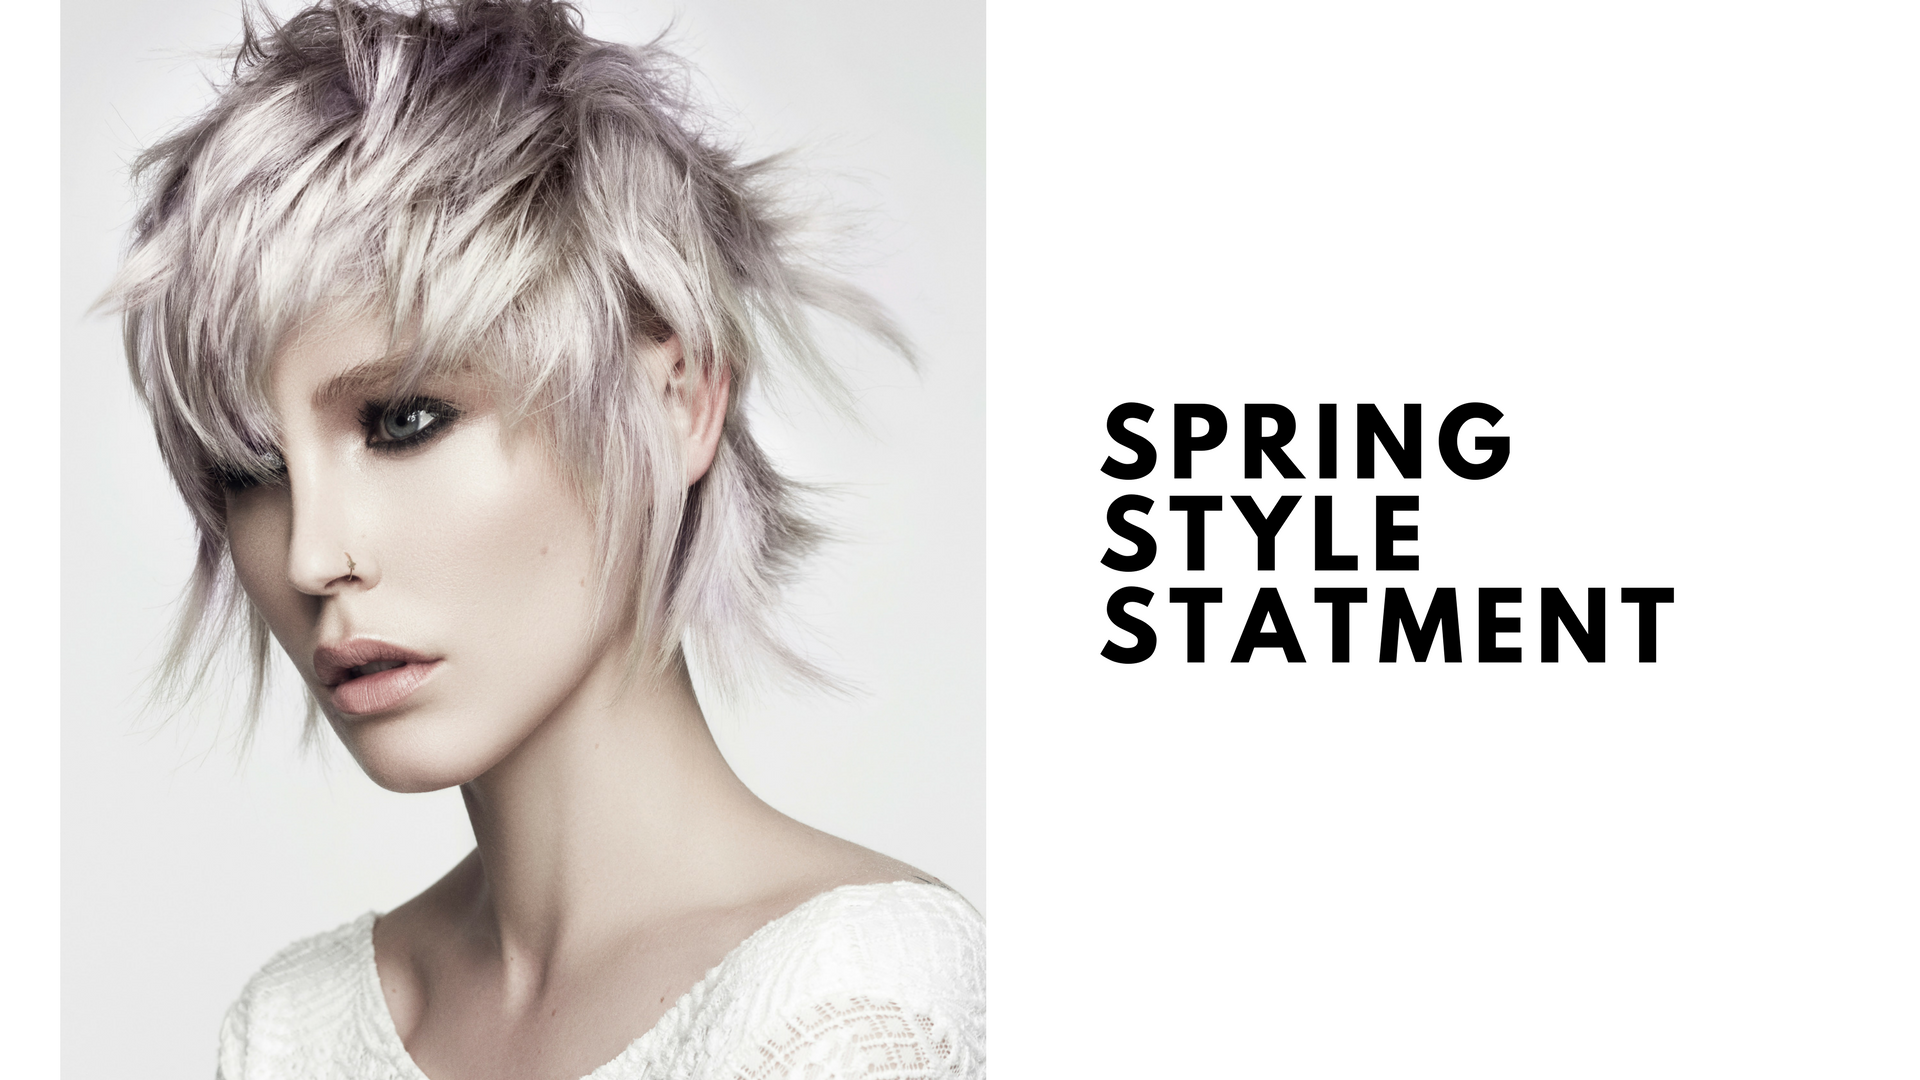 MAKE YOUR SPRING STATEMENT A FABULOUS ONE!